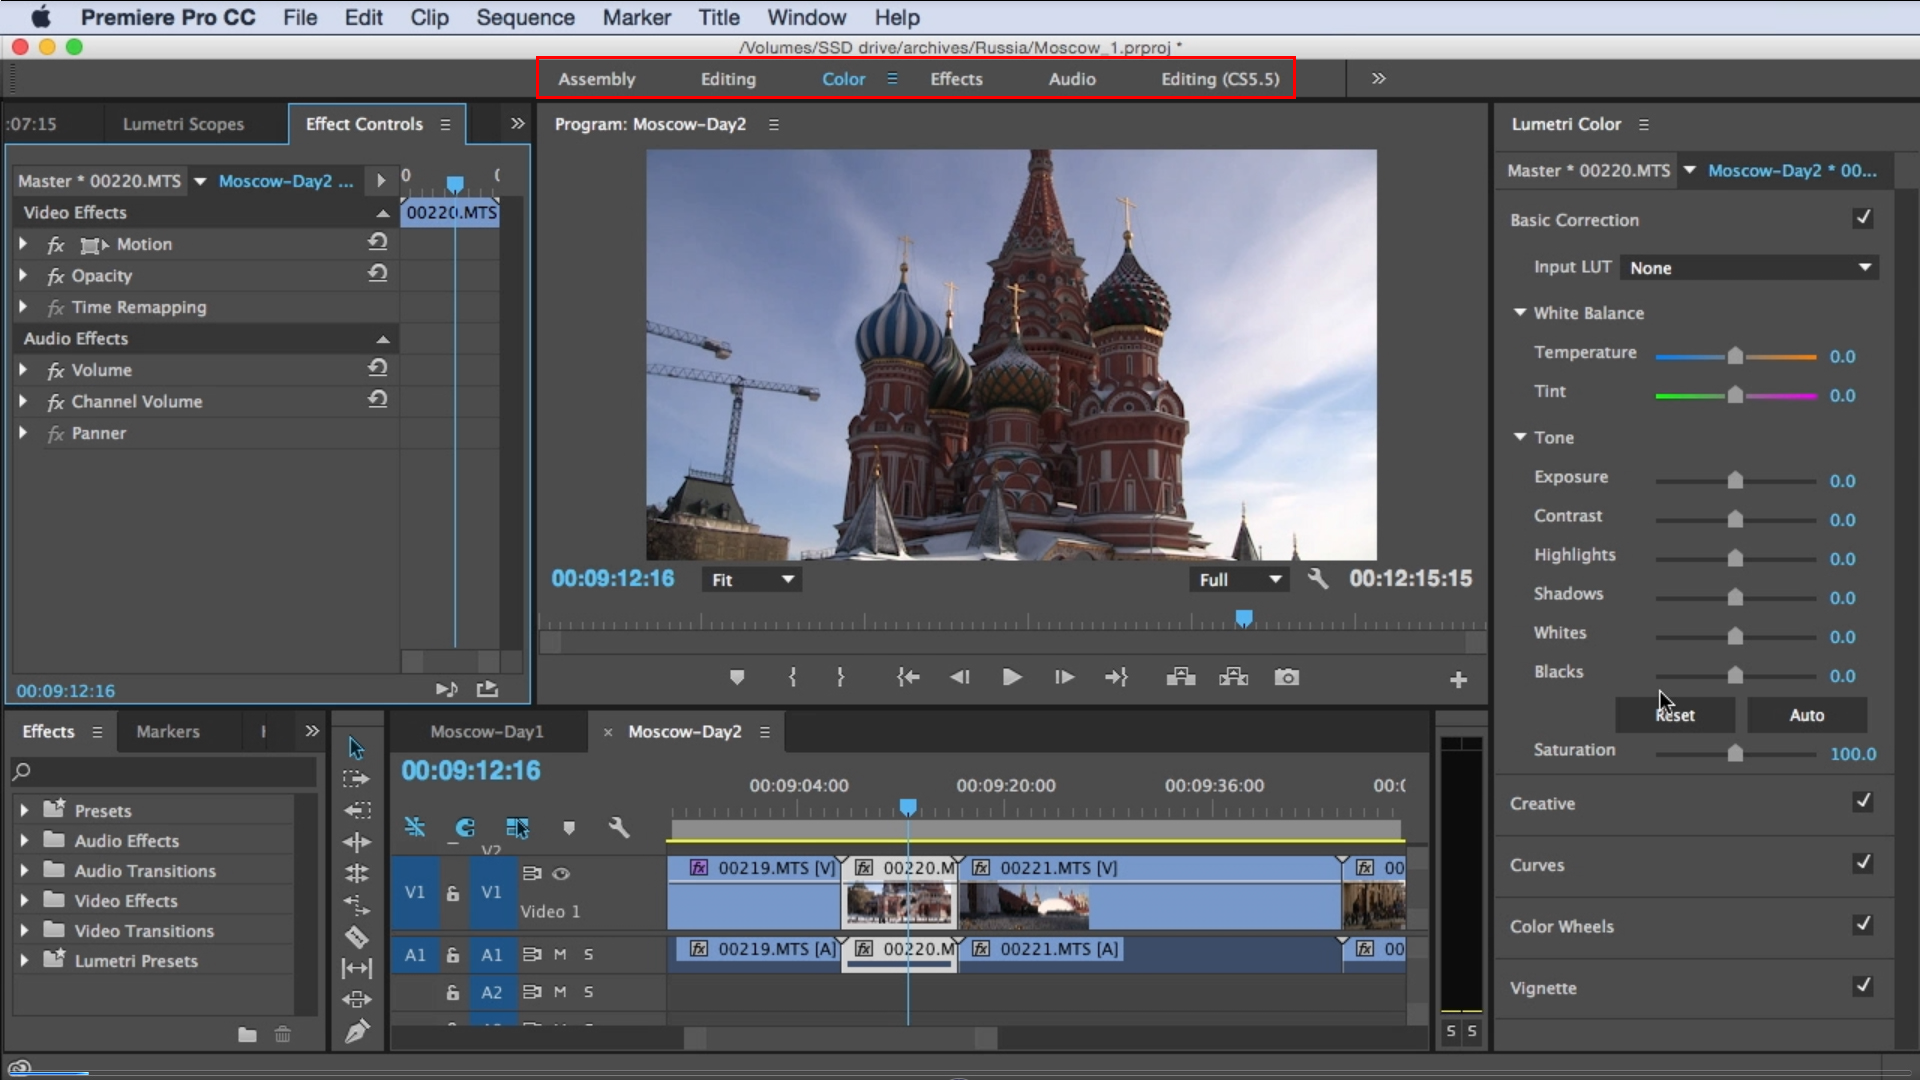 Tutorial: Using the New Lumetri Color Interface in Adobe Premiere